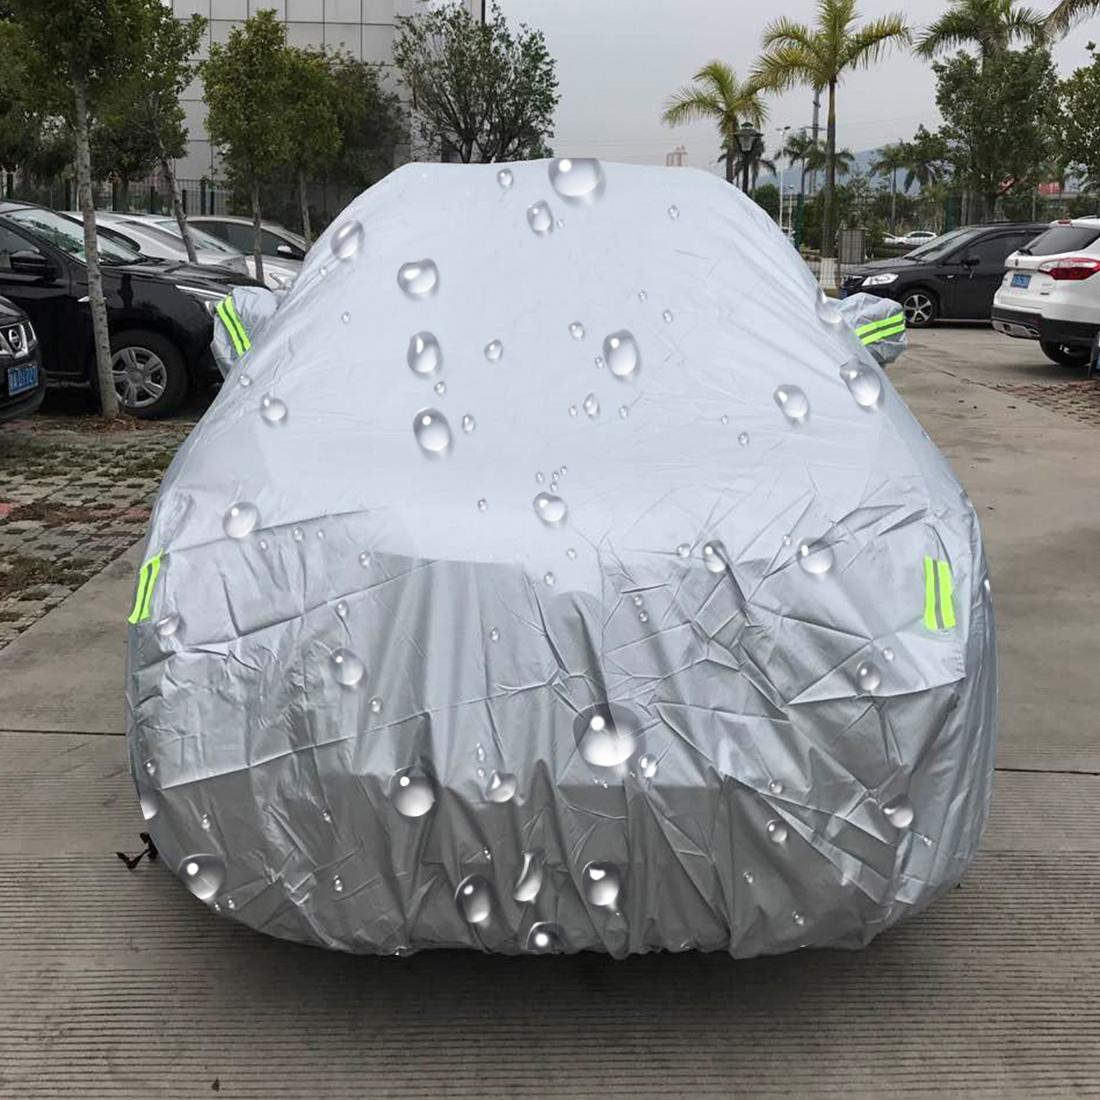 Discount Outdoor Universal Anti Dust Waterproof Sunproof Suv Car Cover With Warning Strips Fits Cars Up To 5 3M 207 Inches In Length Intl Sunsky China